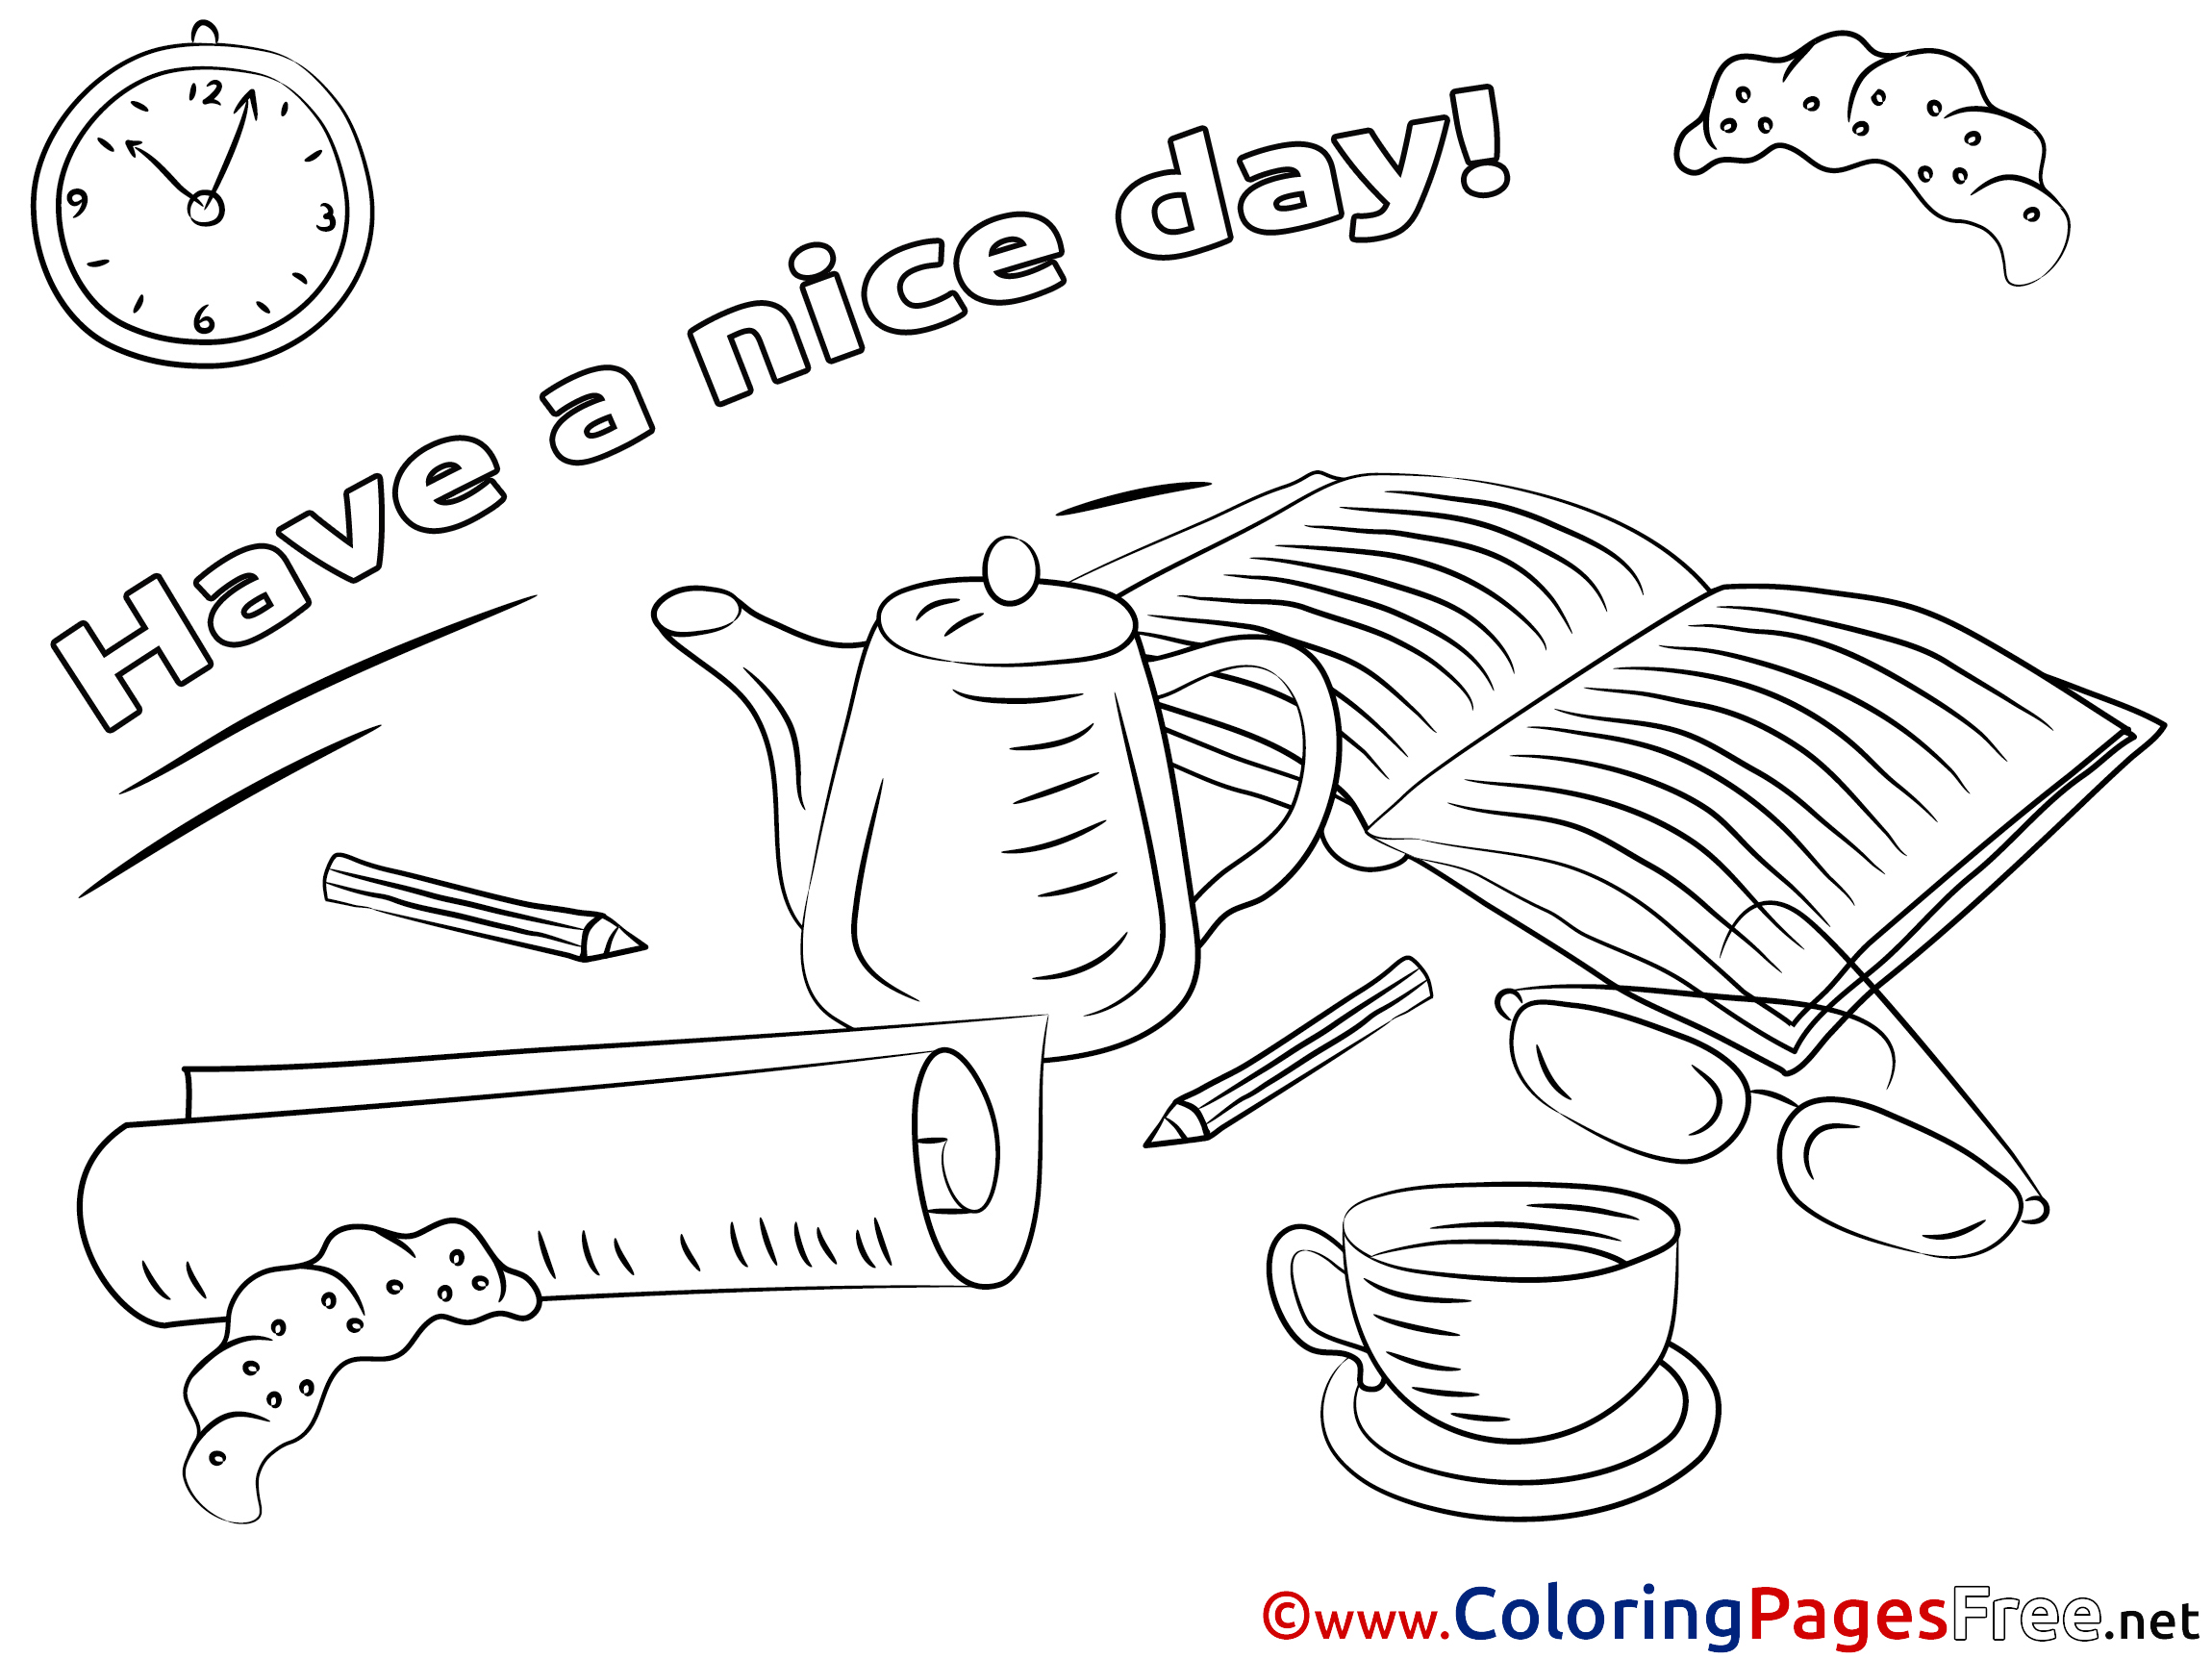 Book Coloring Pages Have a nice Day for free